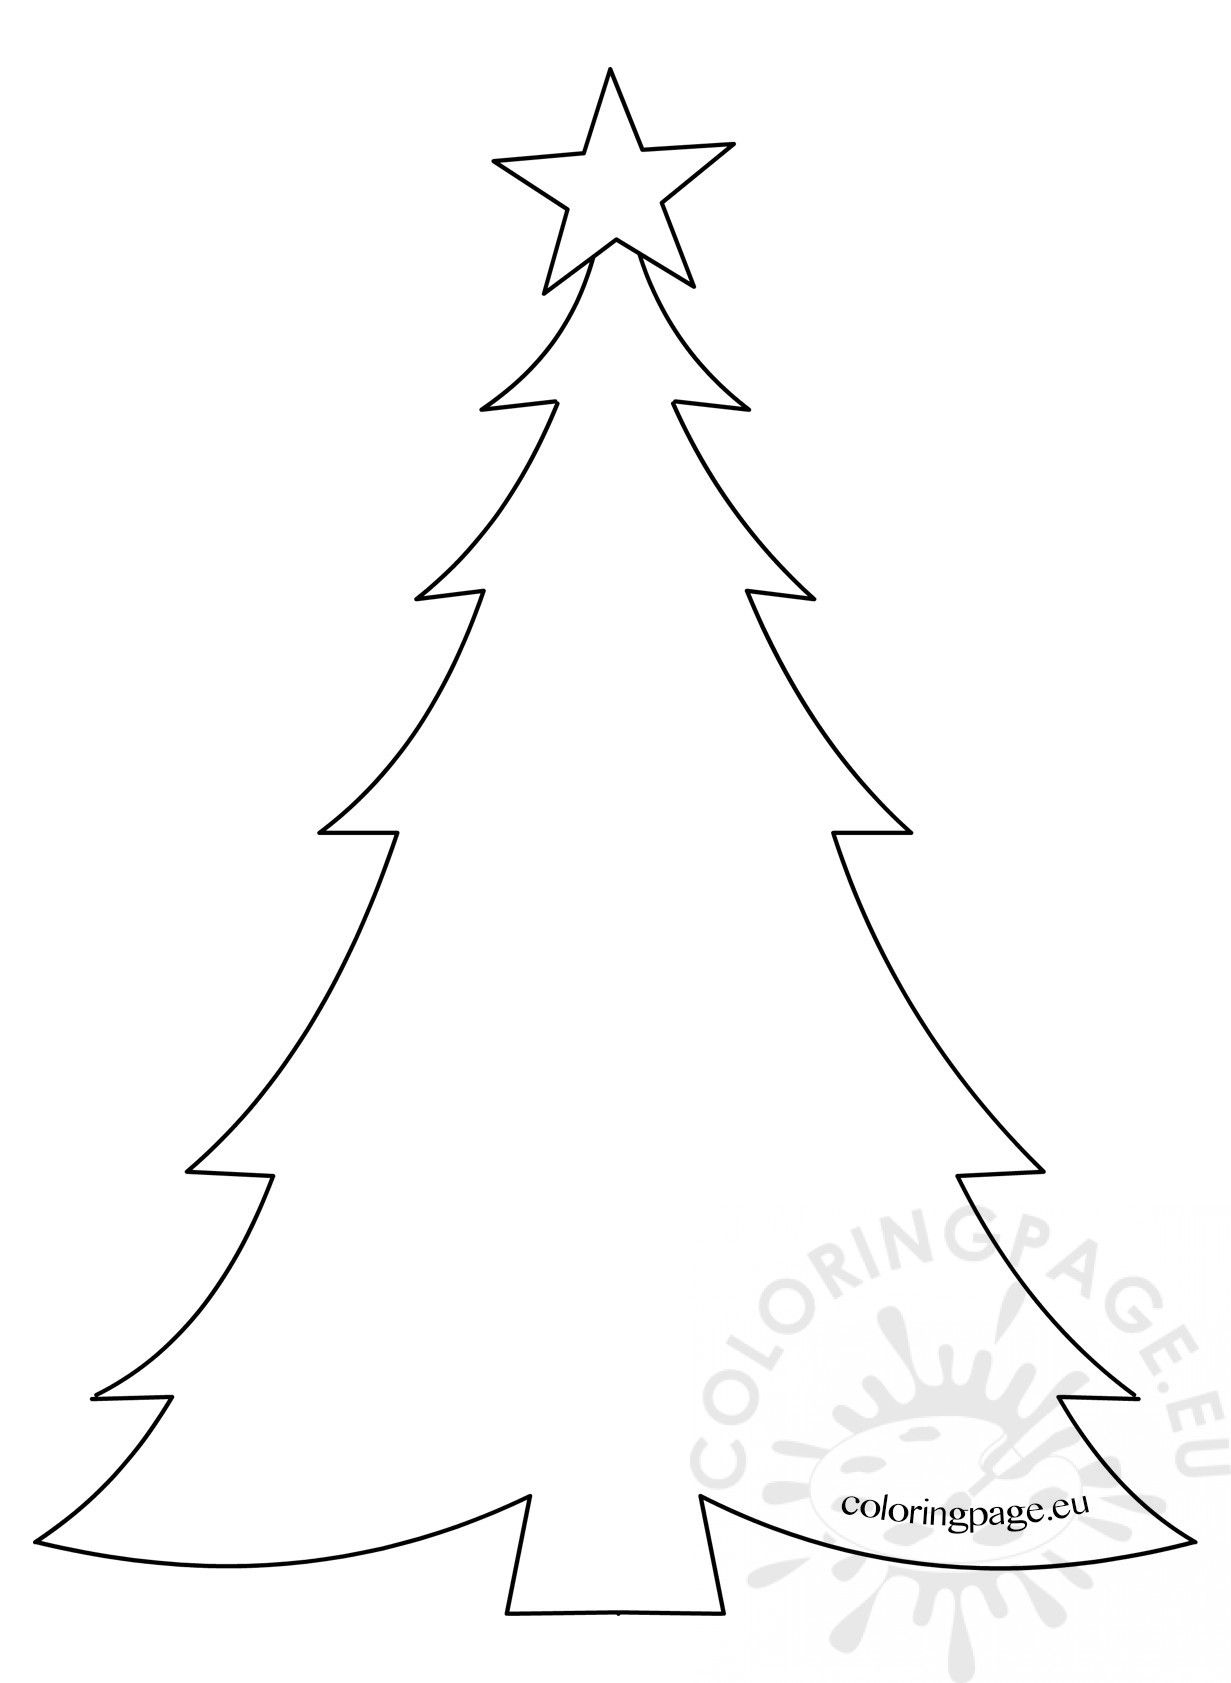 Template Christmas Tree With Star Coloring Page Christmas Tree Coloring Page Christmas Tree Template Tree Coloring Page